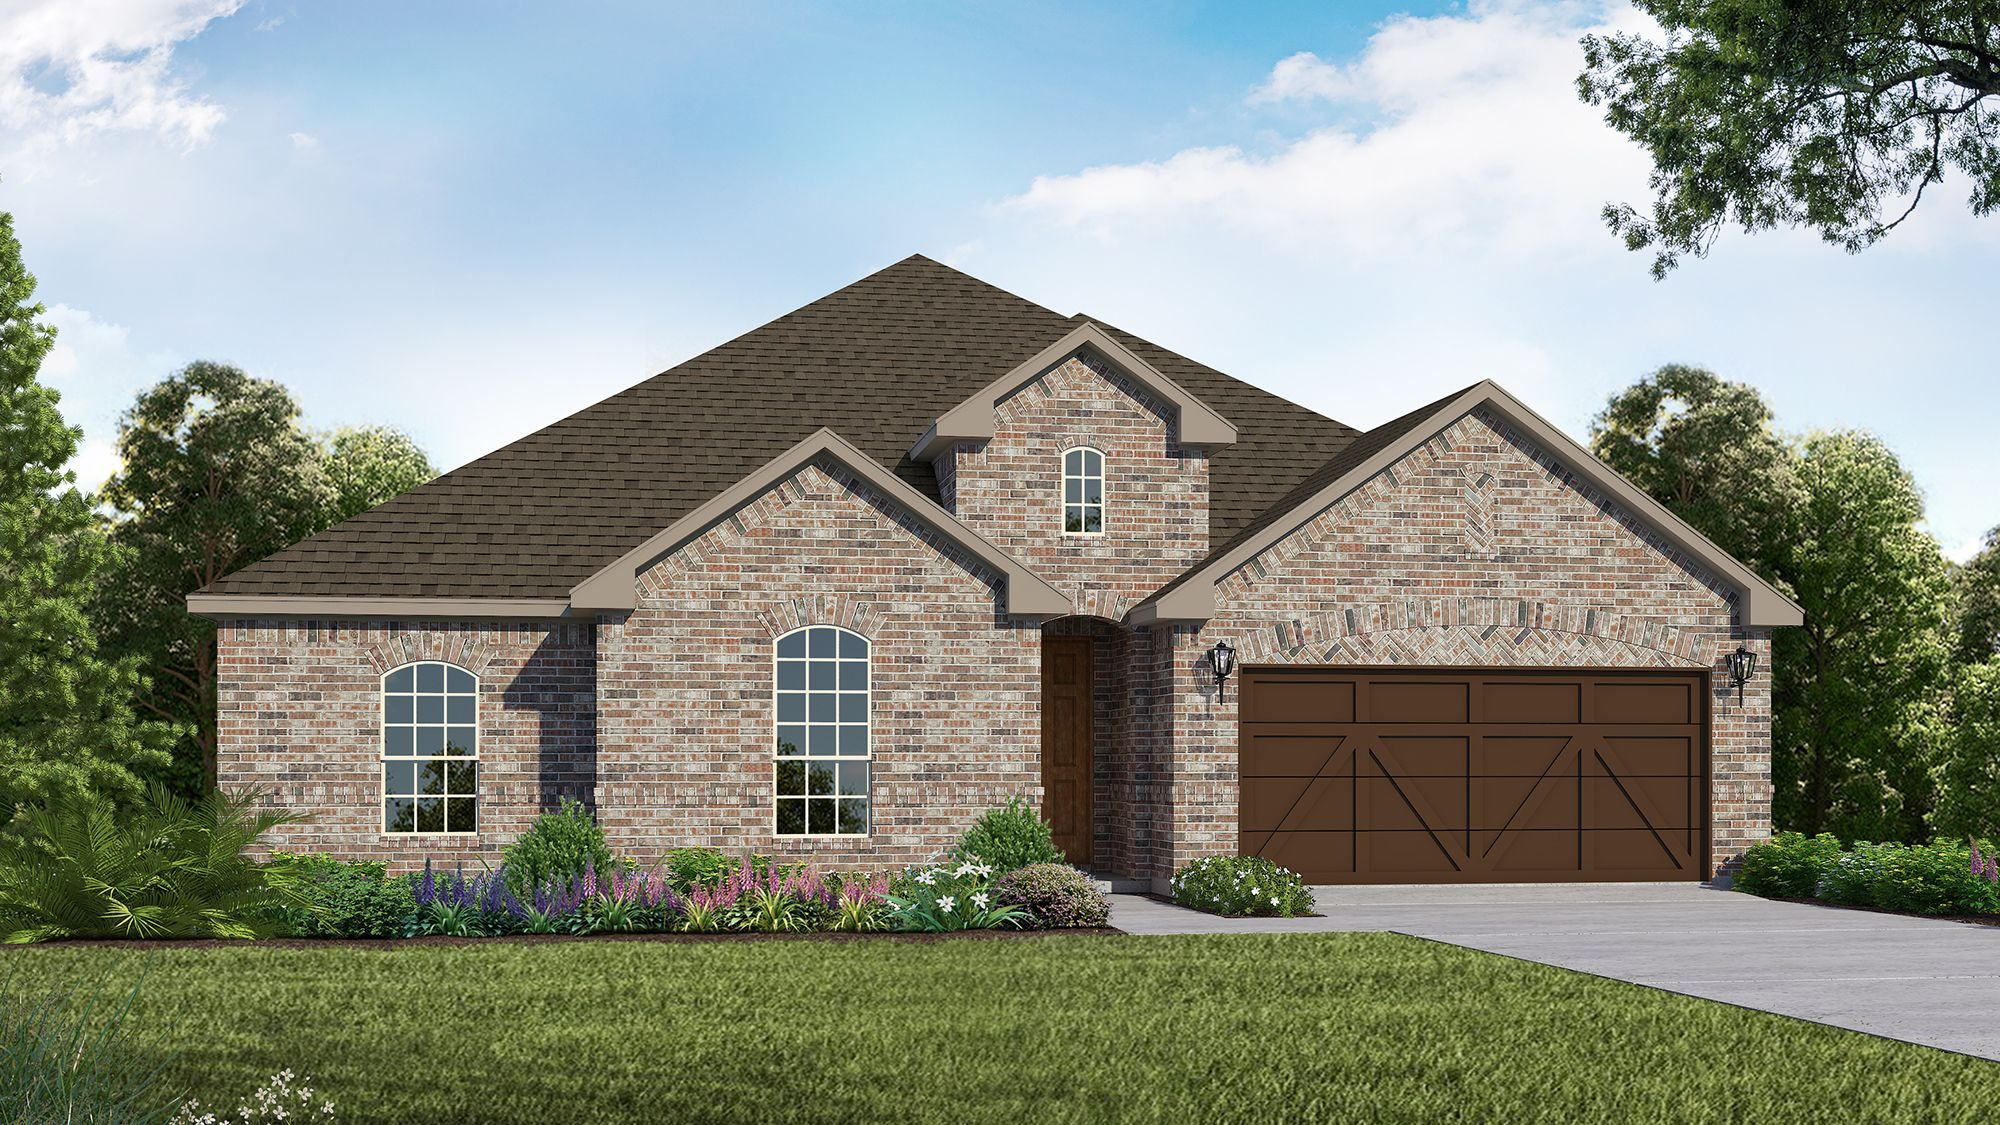 Plan 1681 Elevation A by American Legend Homes